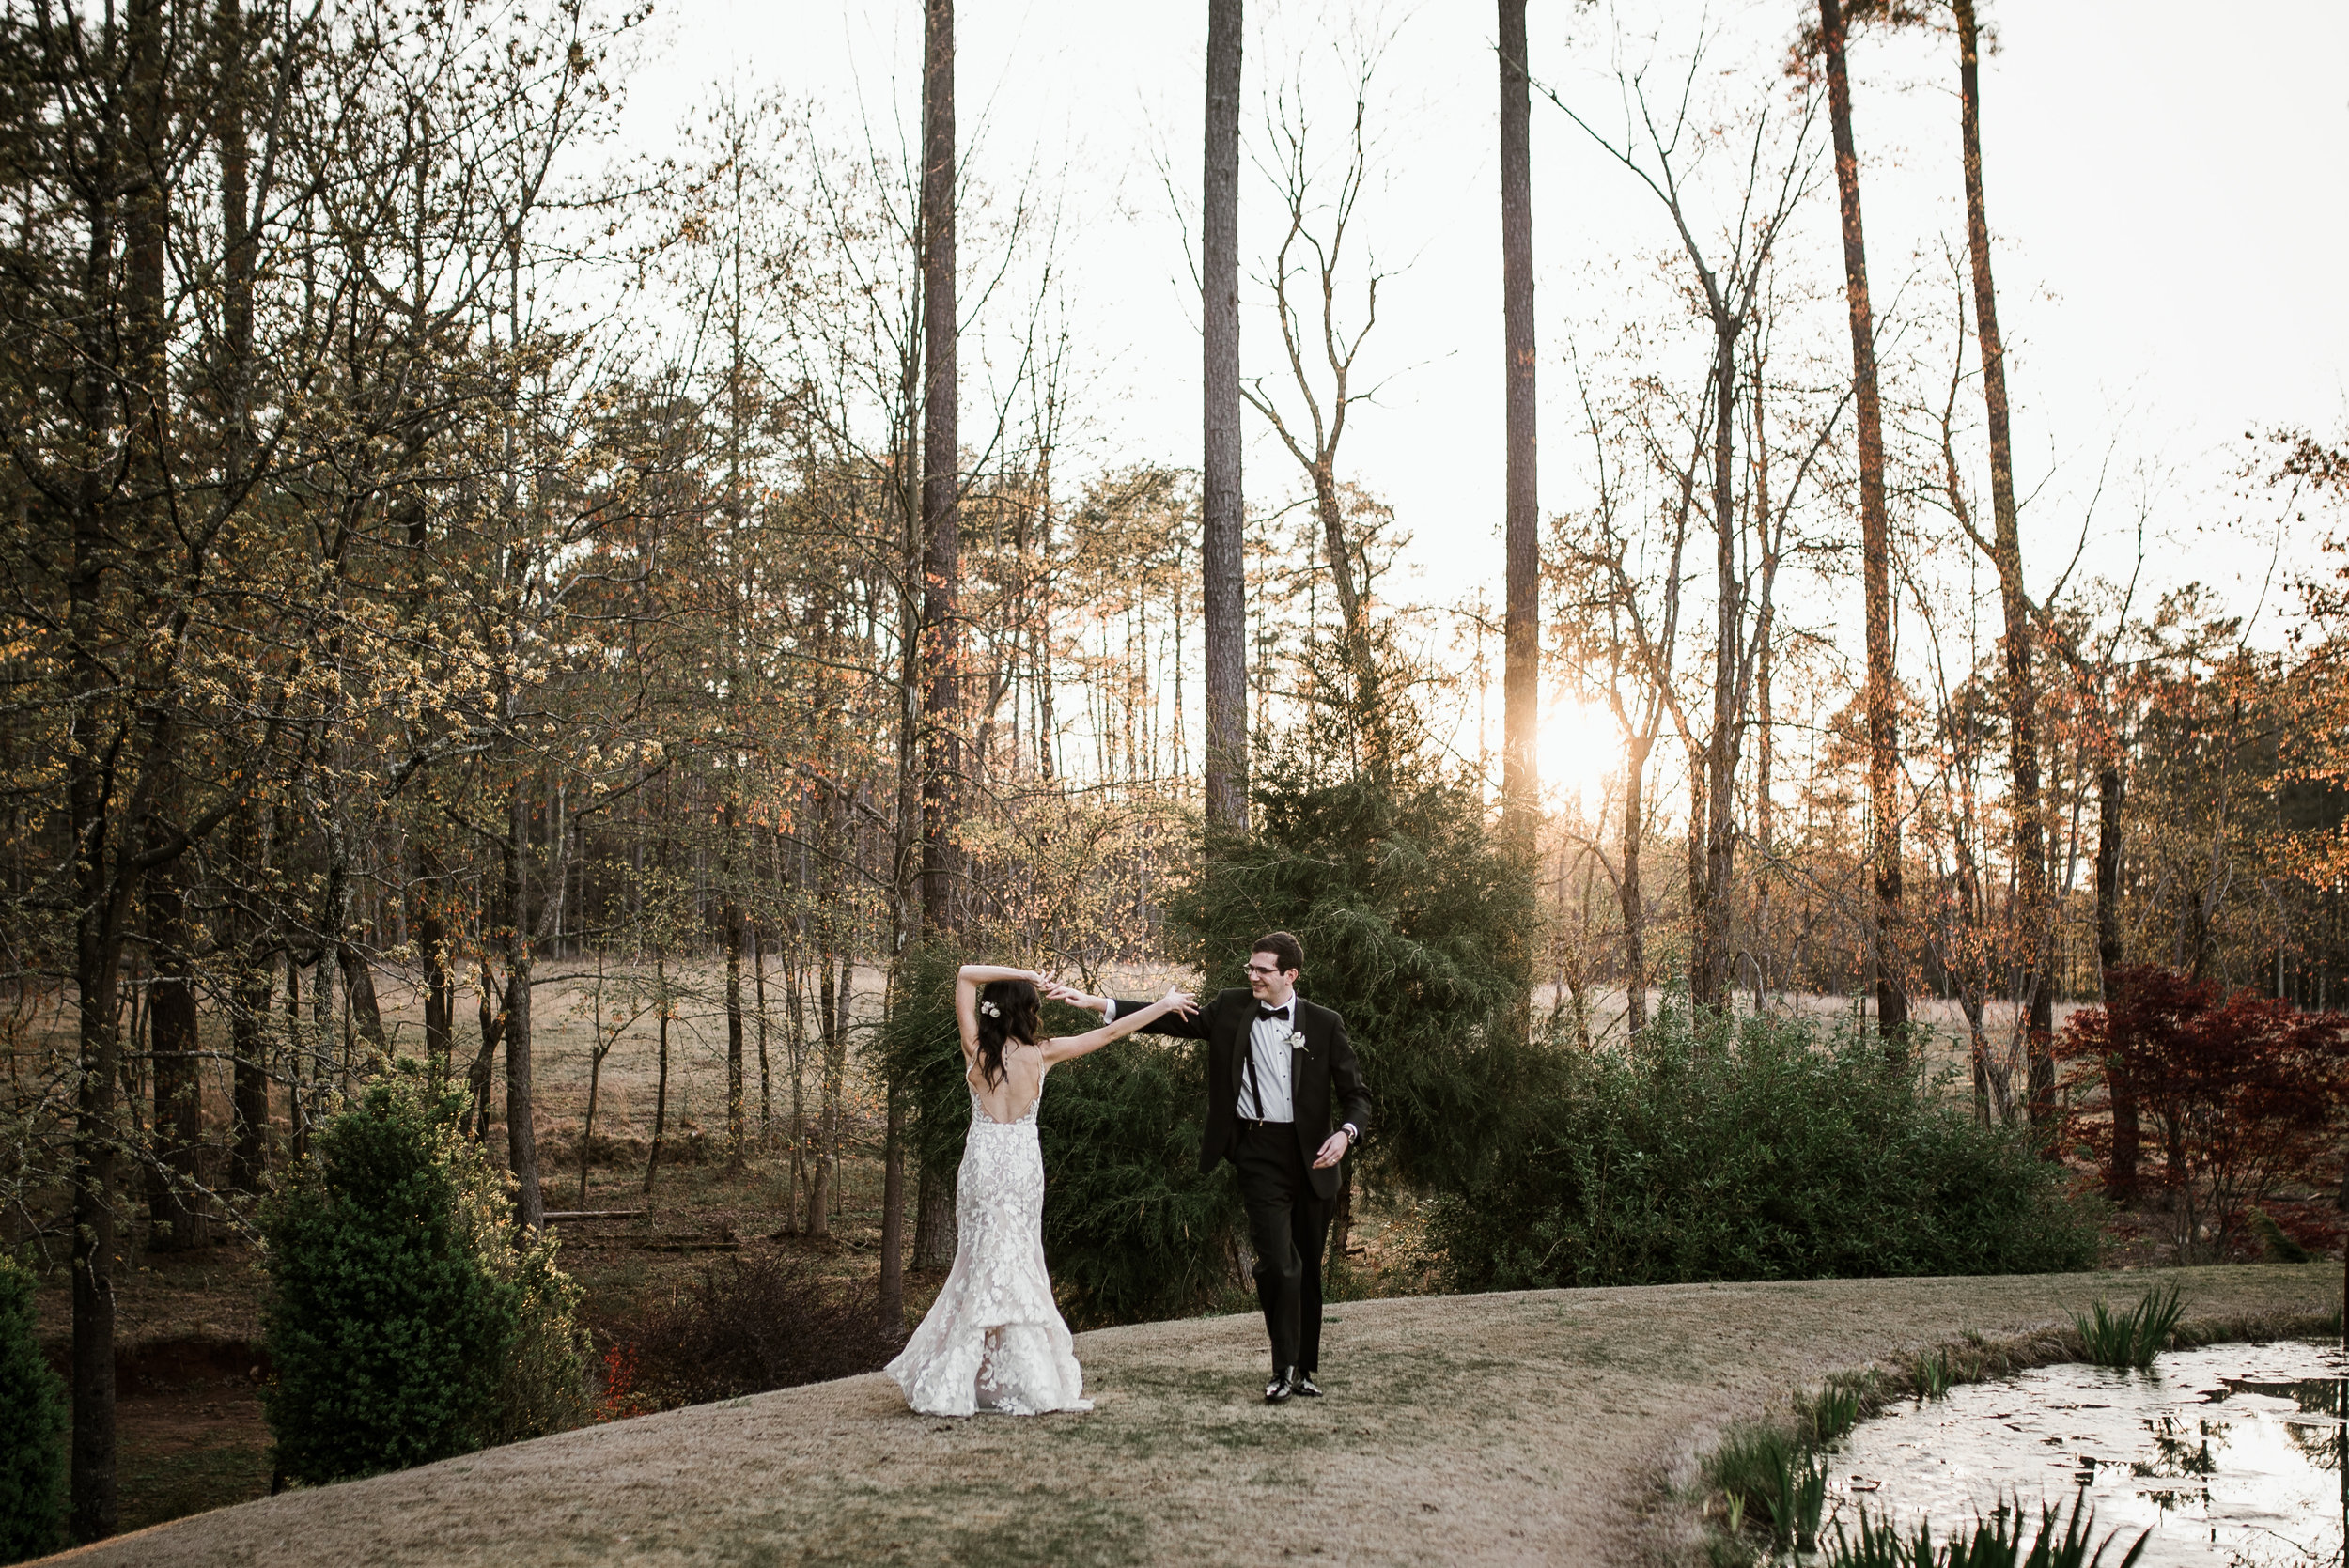 Carriage House Wedding - Chapel Hill Wedding - Chapel Hill Wedding Photographer - North Carolina Wedding Photographer